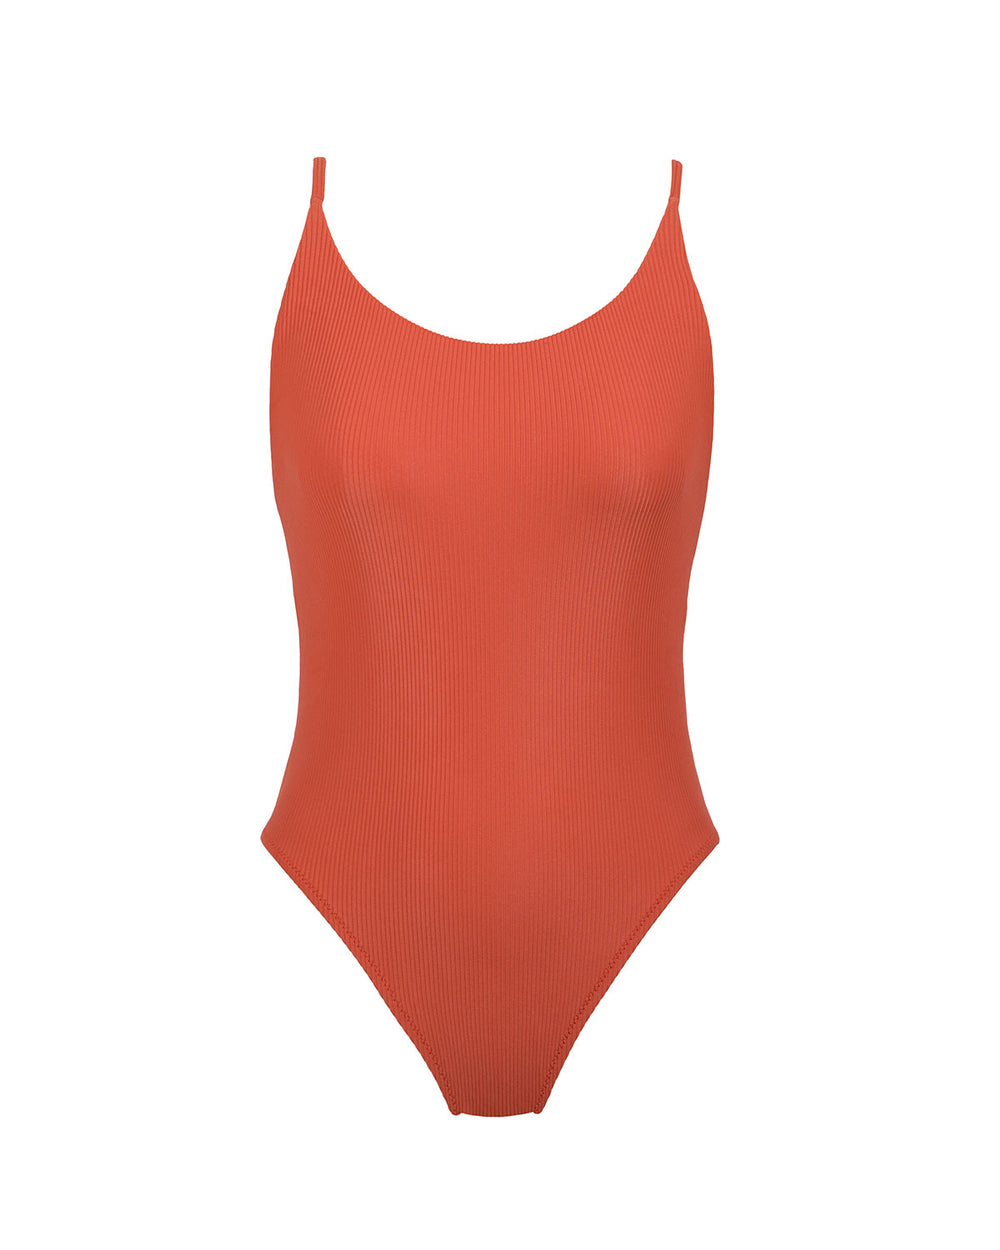 Pacific One Piece - Burnt Orange Rib - Static Swimwear - Modern Minimalist Bikinis - Made in Los Angeles